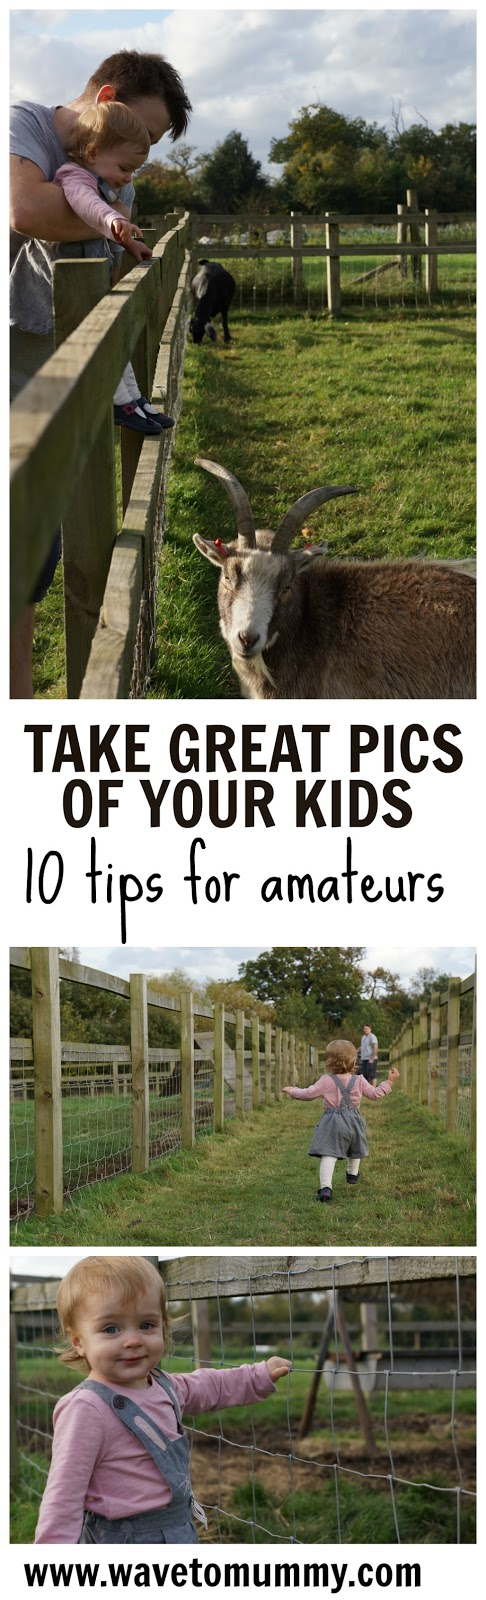 10 tips on how to take great photos of your kids. Simple photography tips suitable for total amateurs, including how to use light, composition and angles. This photography tutorial post is great for any parent that wants to take better pictures of their child, no matter what camera they use.